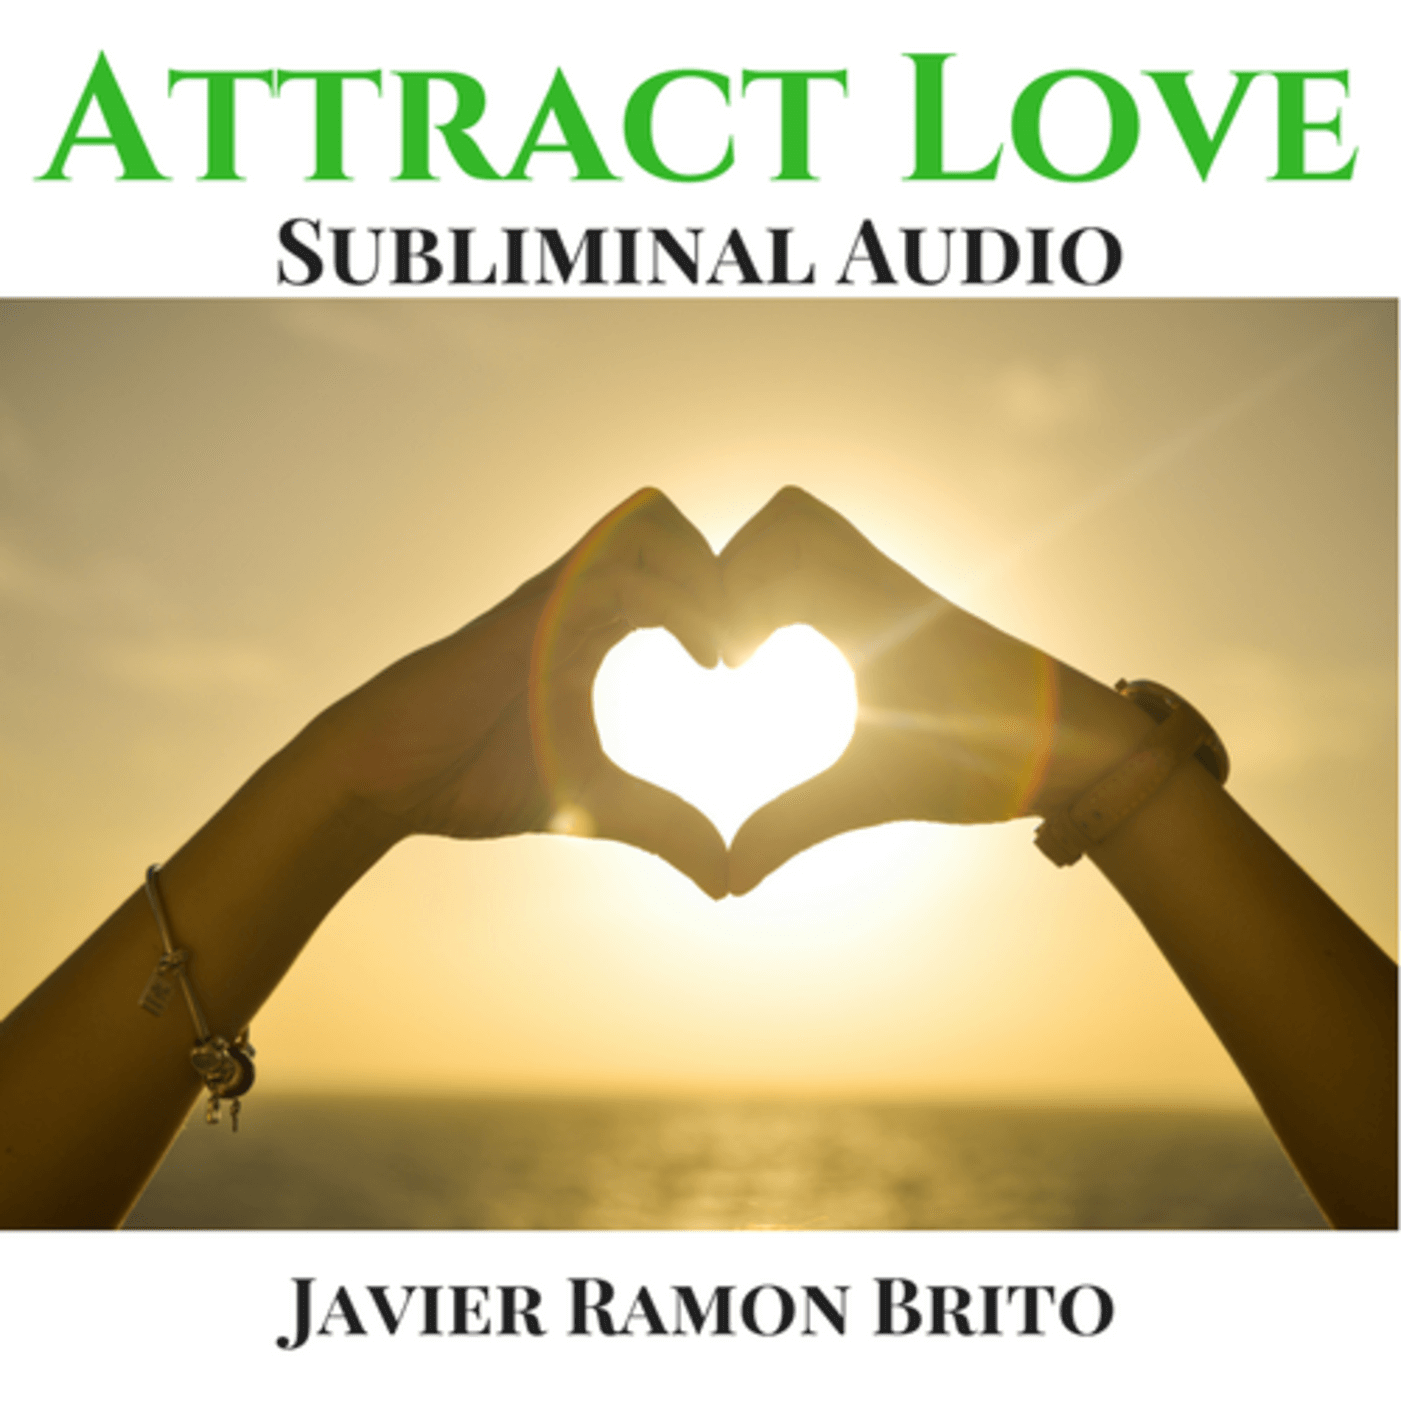 Mp3 Audio Attract Love Into Your Life Audio To Increase Self Love And Love